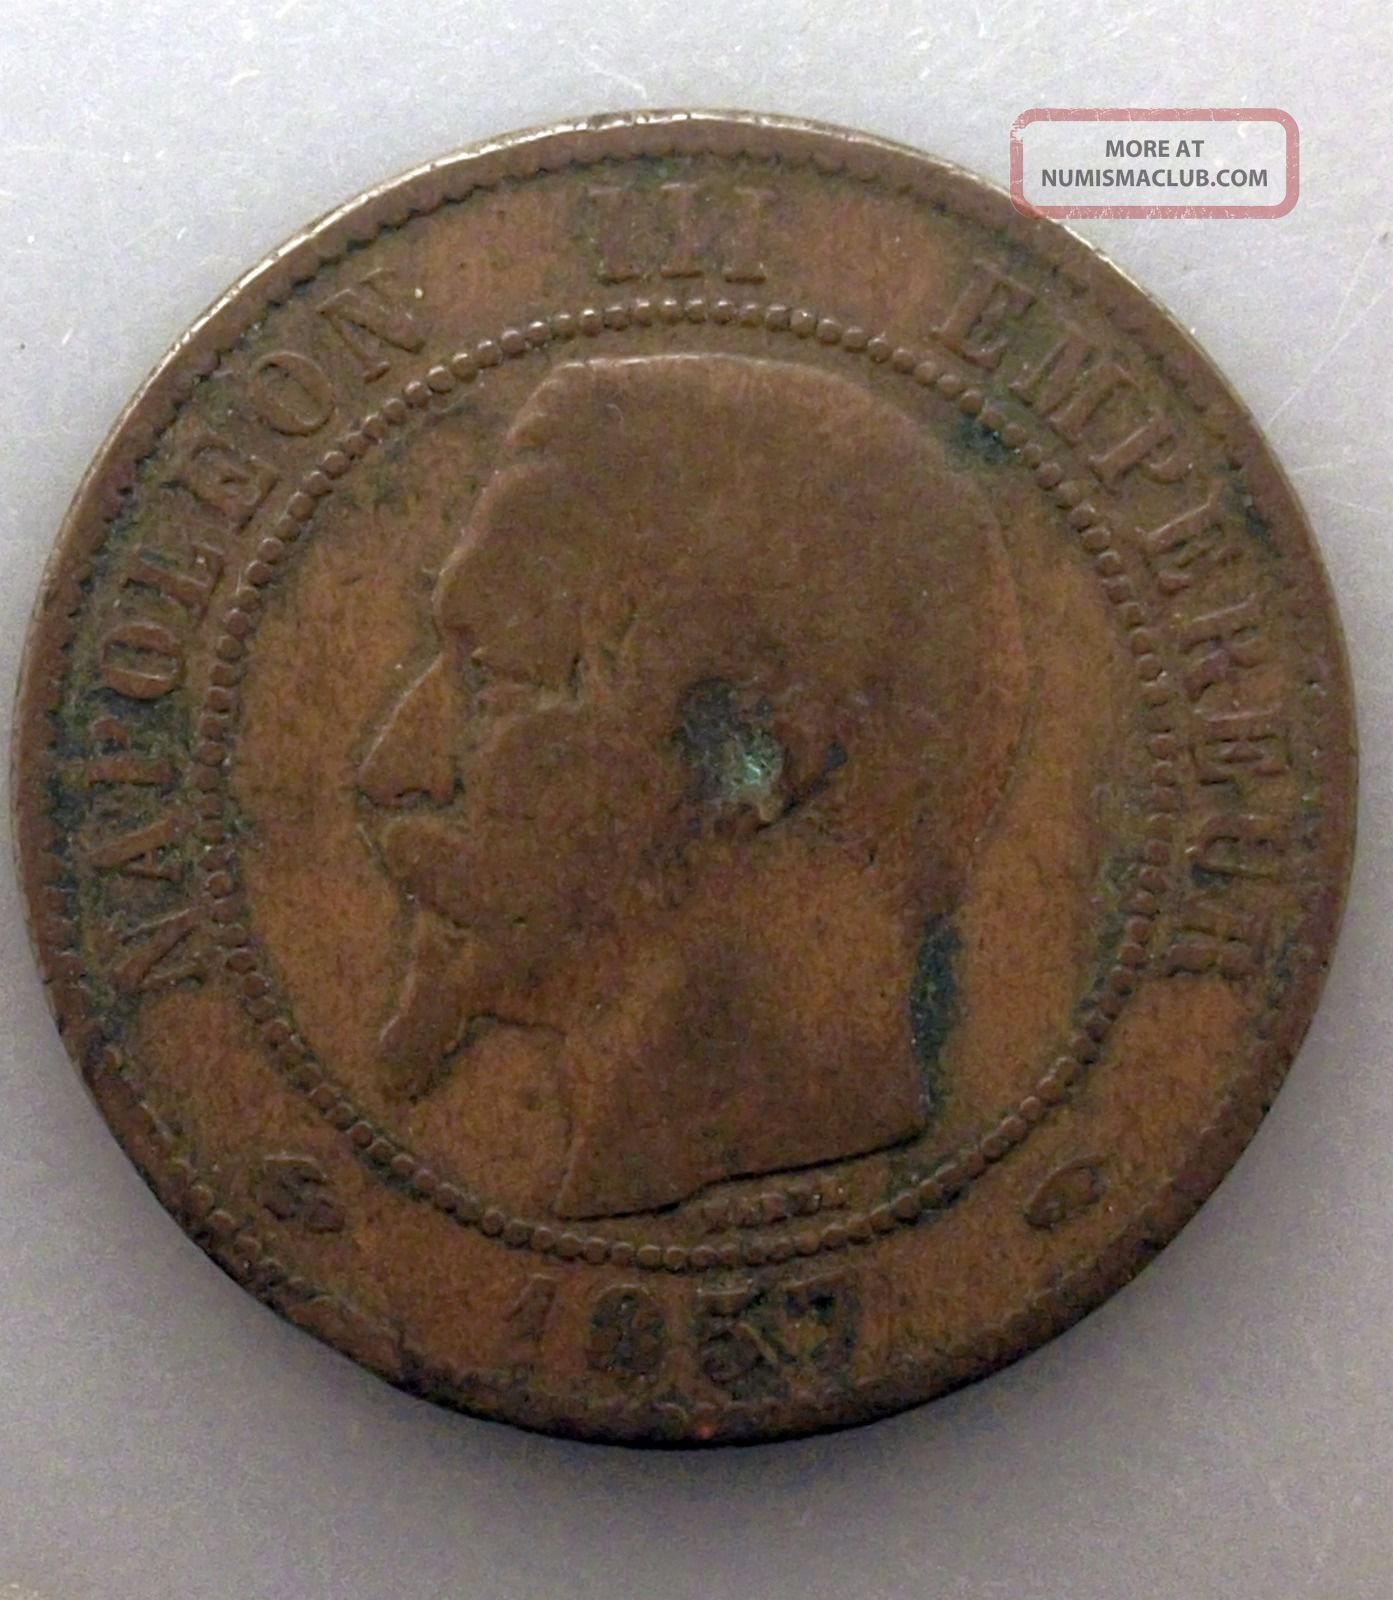 France 10 Centimes,  1857 A Km 771.  1 Puqrqy France photo